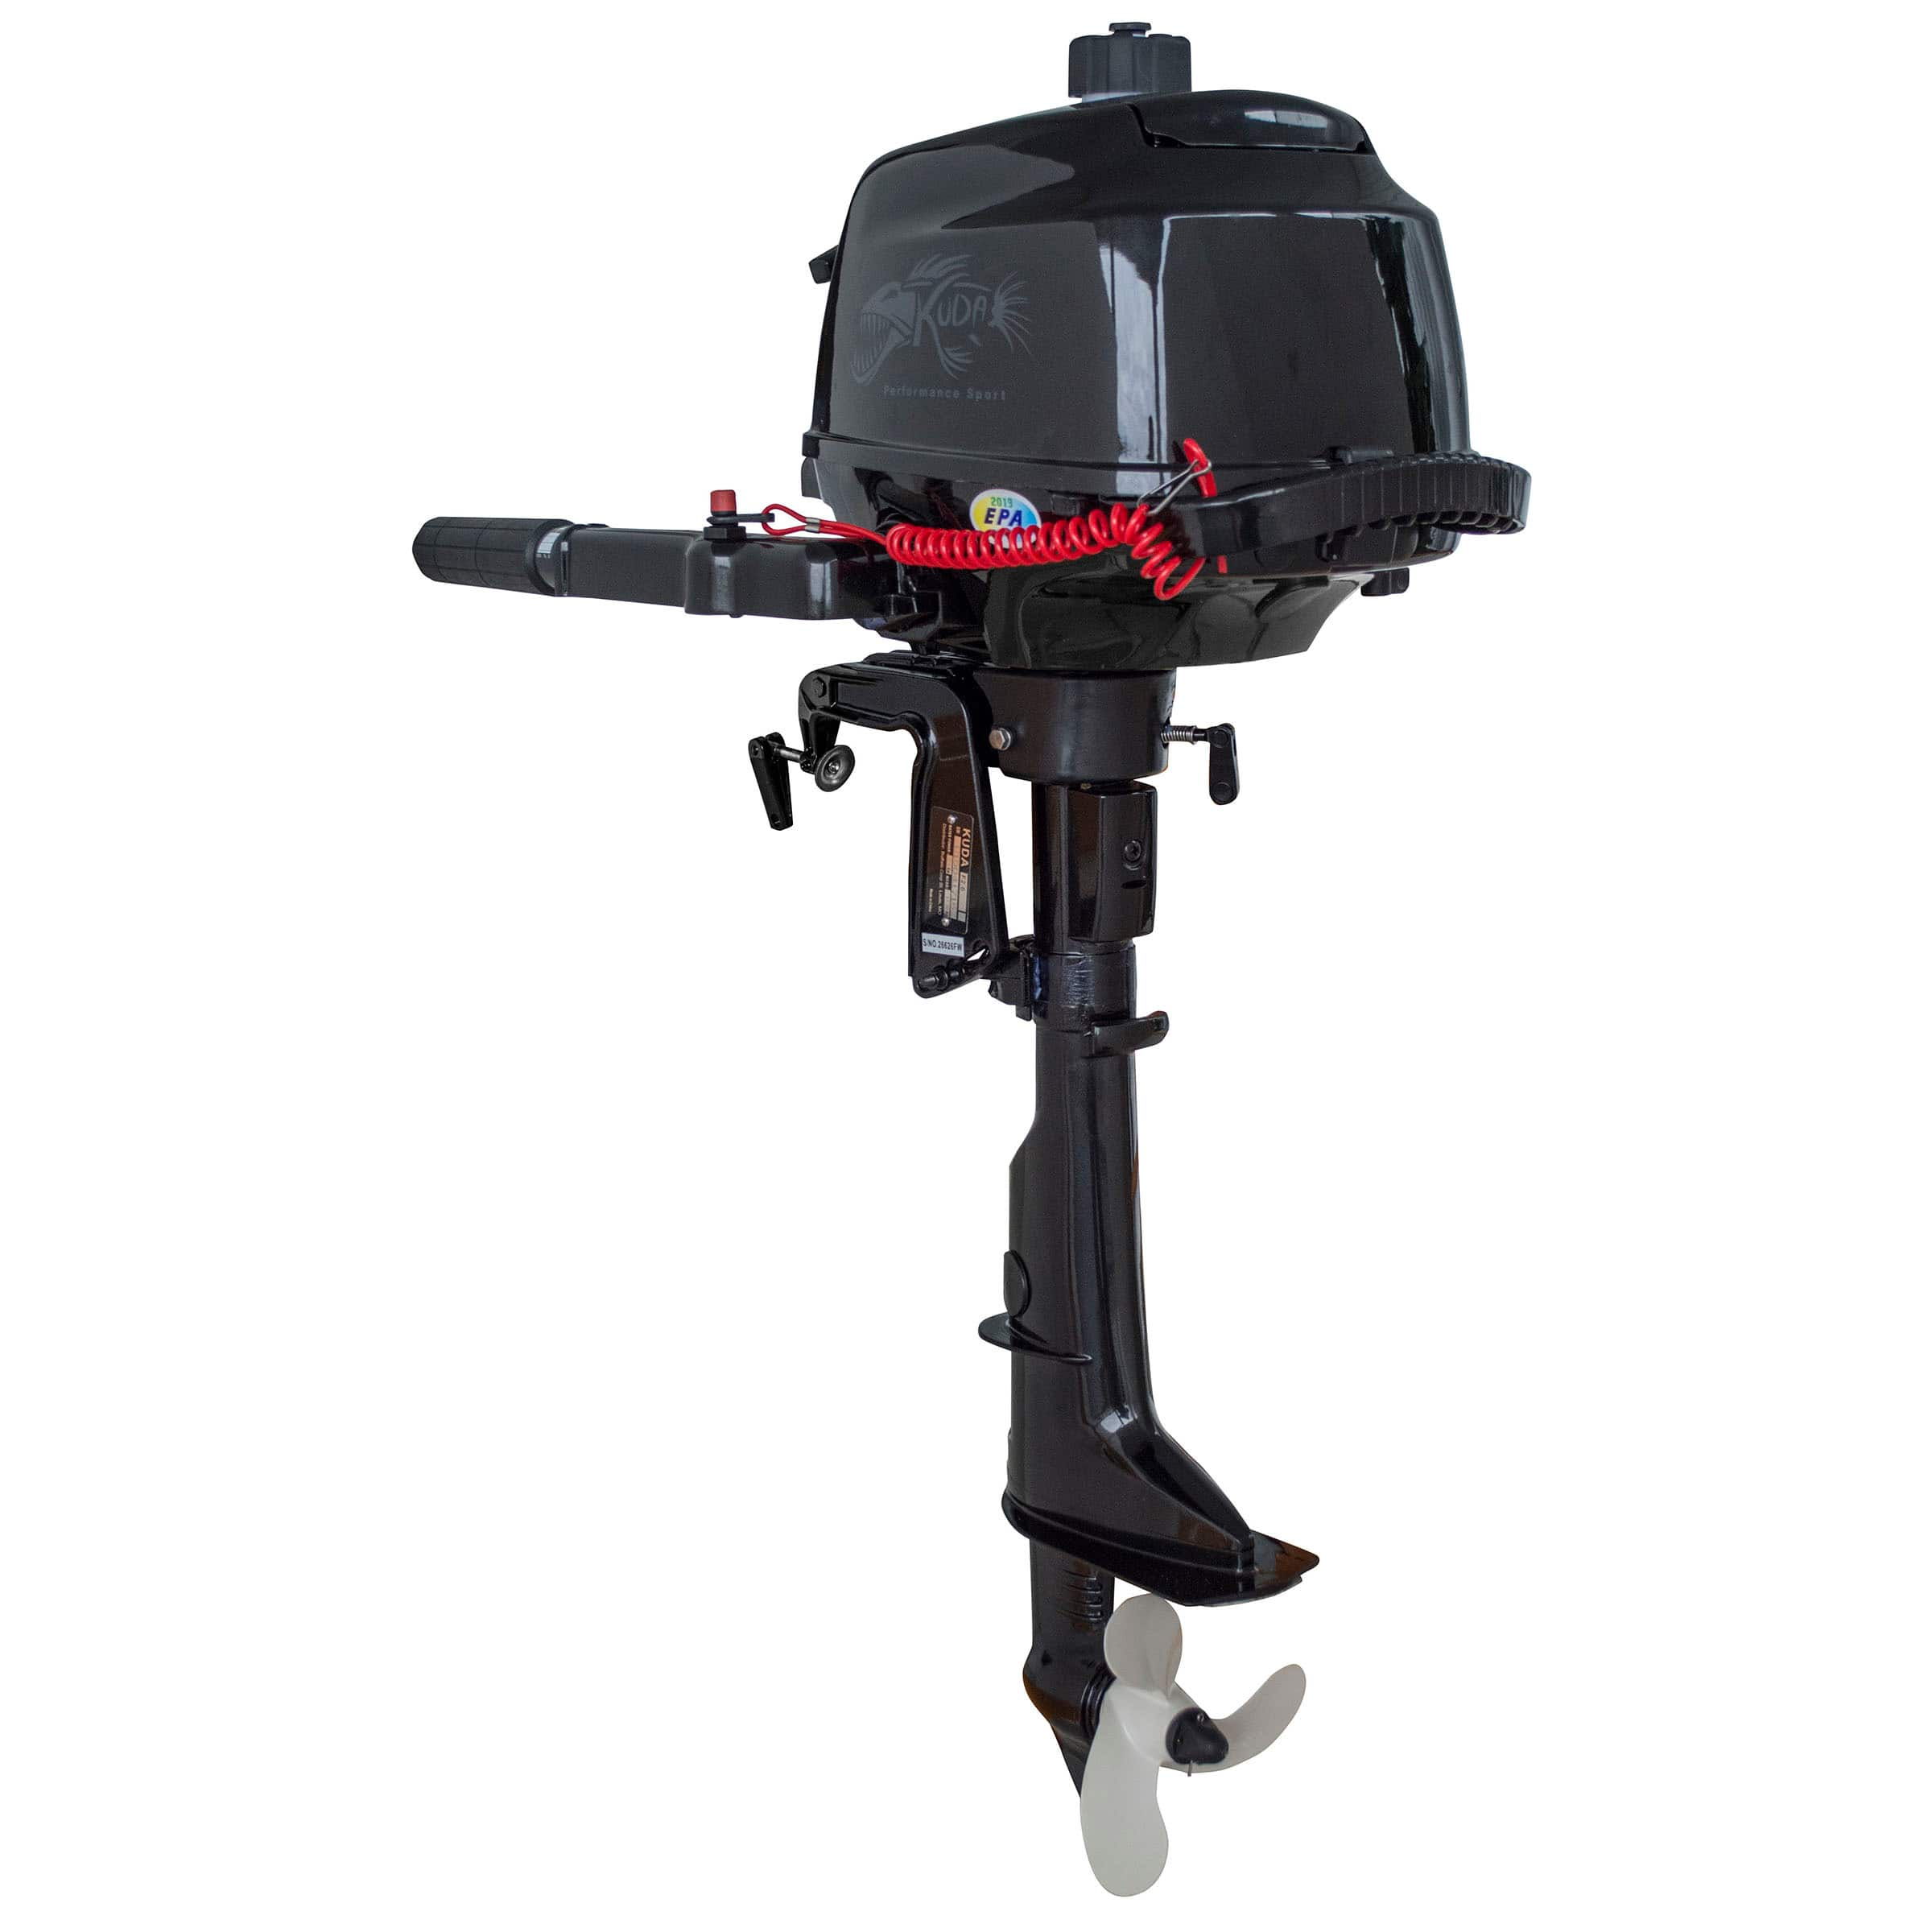 "Kuda 4 Stroke 2.6HP Outboard Boat Tiller Motor (5500 RPM, 17"" Shaft, Recoil Start) $500 + free shipping"